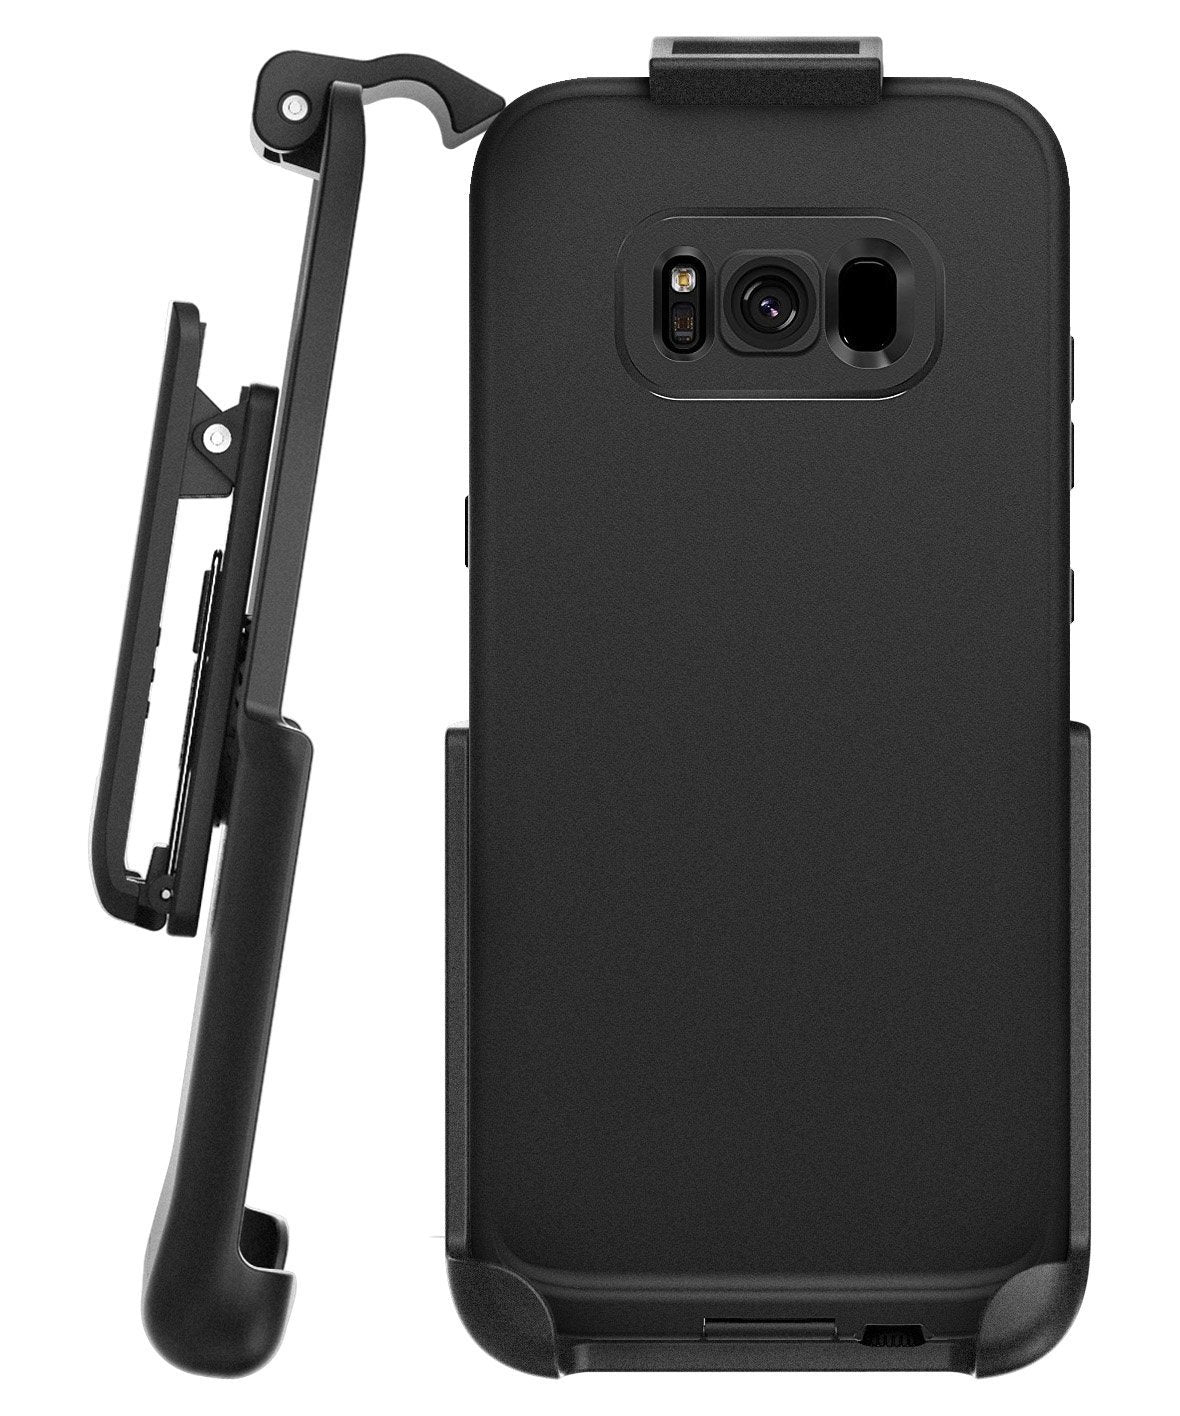 Encased Belt Clip Holster for Lifeproof Fre Case - Galaxy S8 (case sold separately)